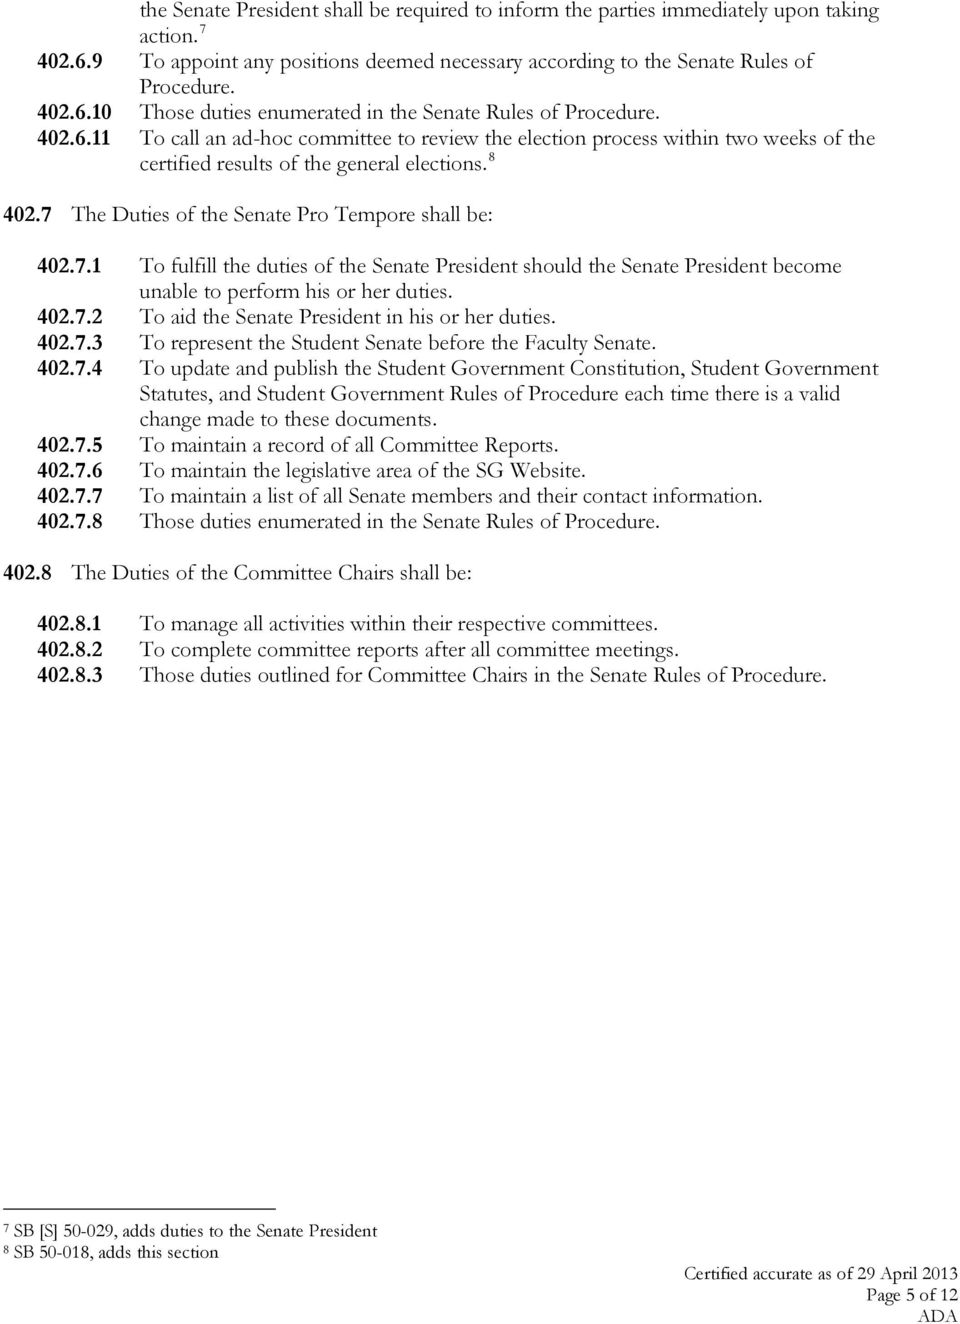 The Duties of the Senate Pro Tempore shall be: 402.7.1 To fulfill the duties of the Senate President should the Senate President become unable to perform his or her duties. 402.7.2 To aid the Senate President in his or her duties.